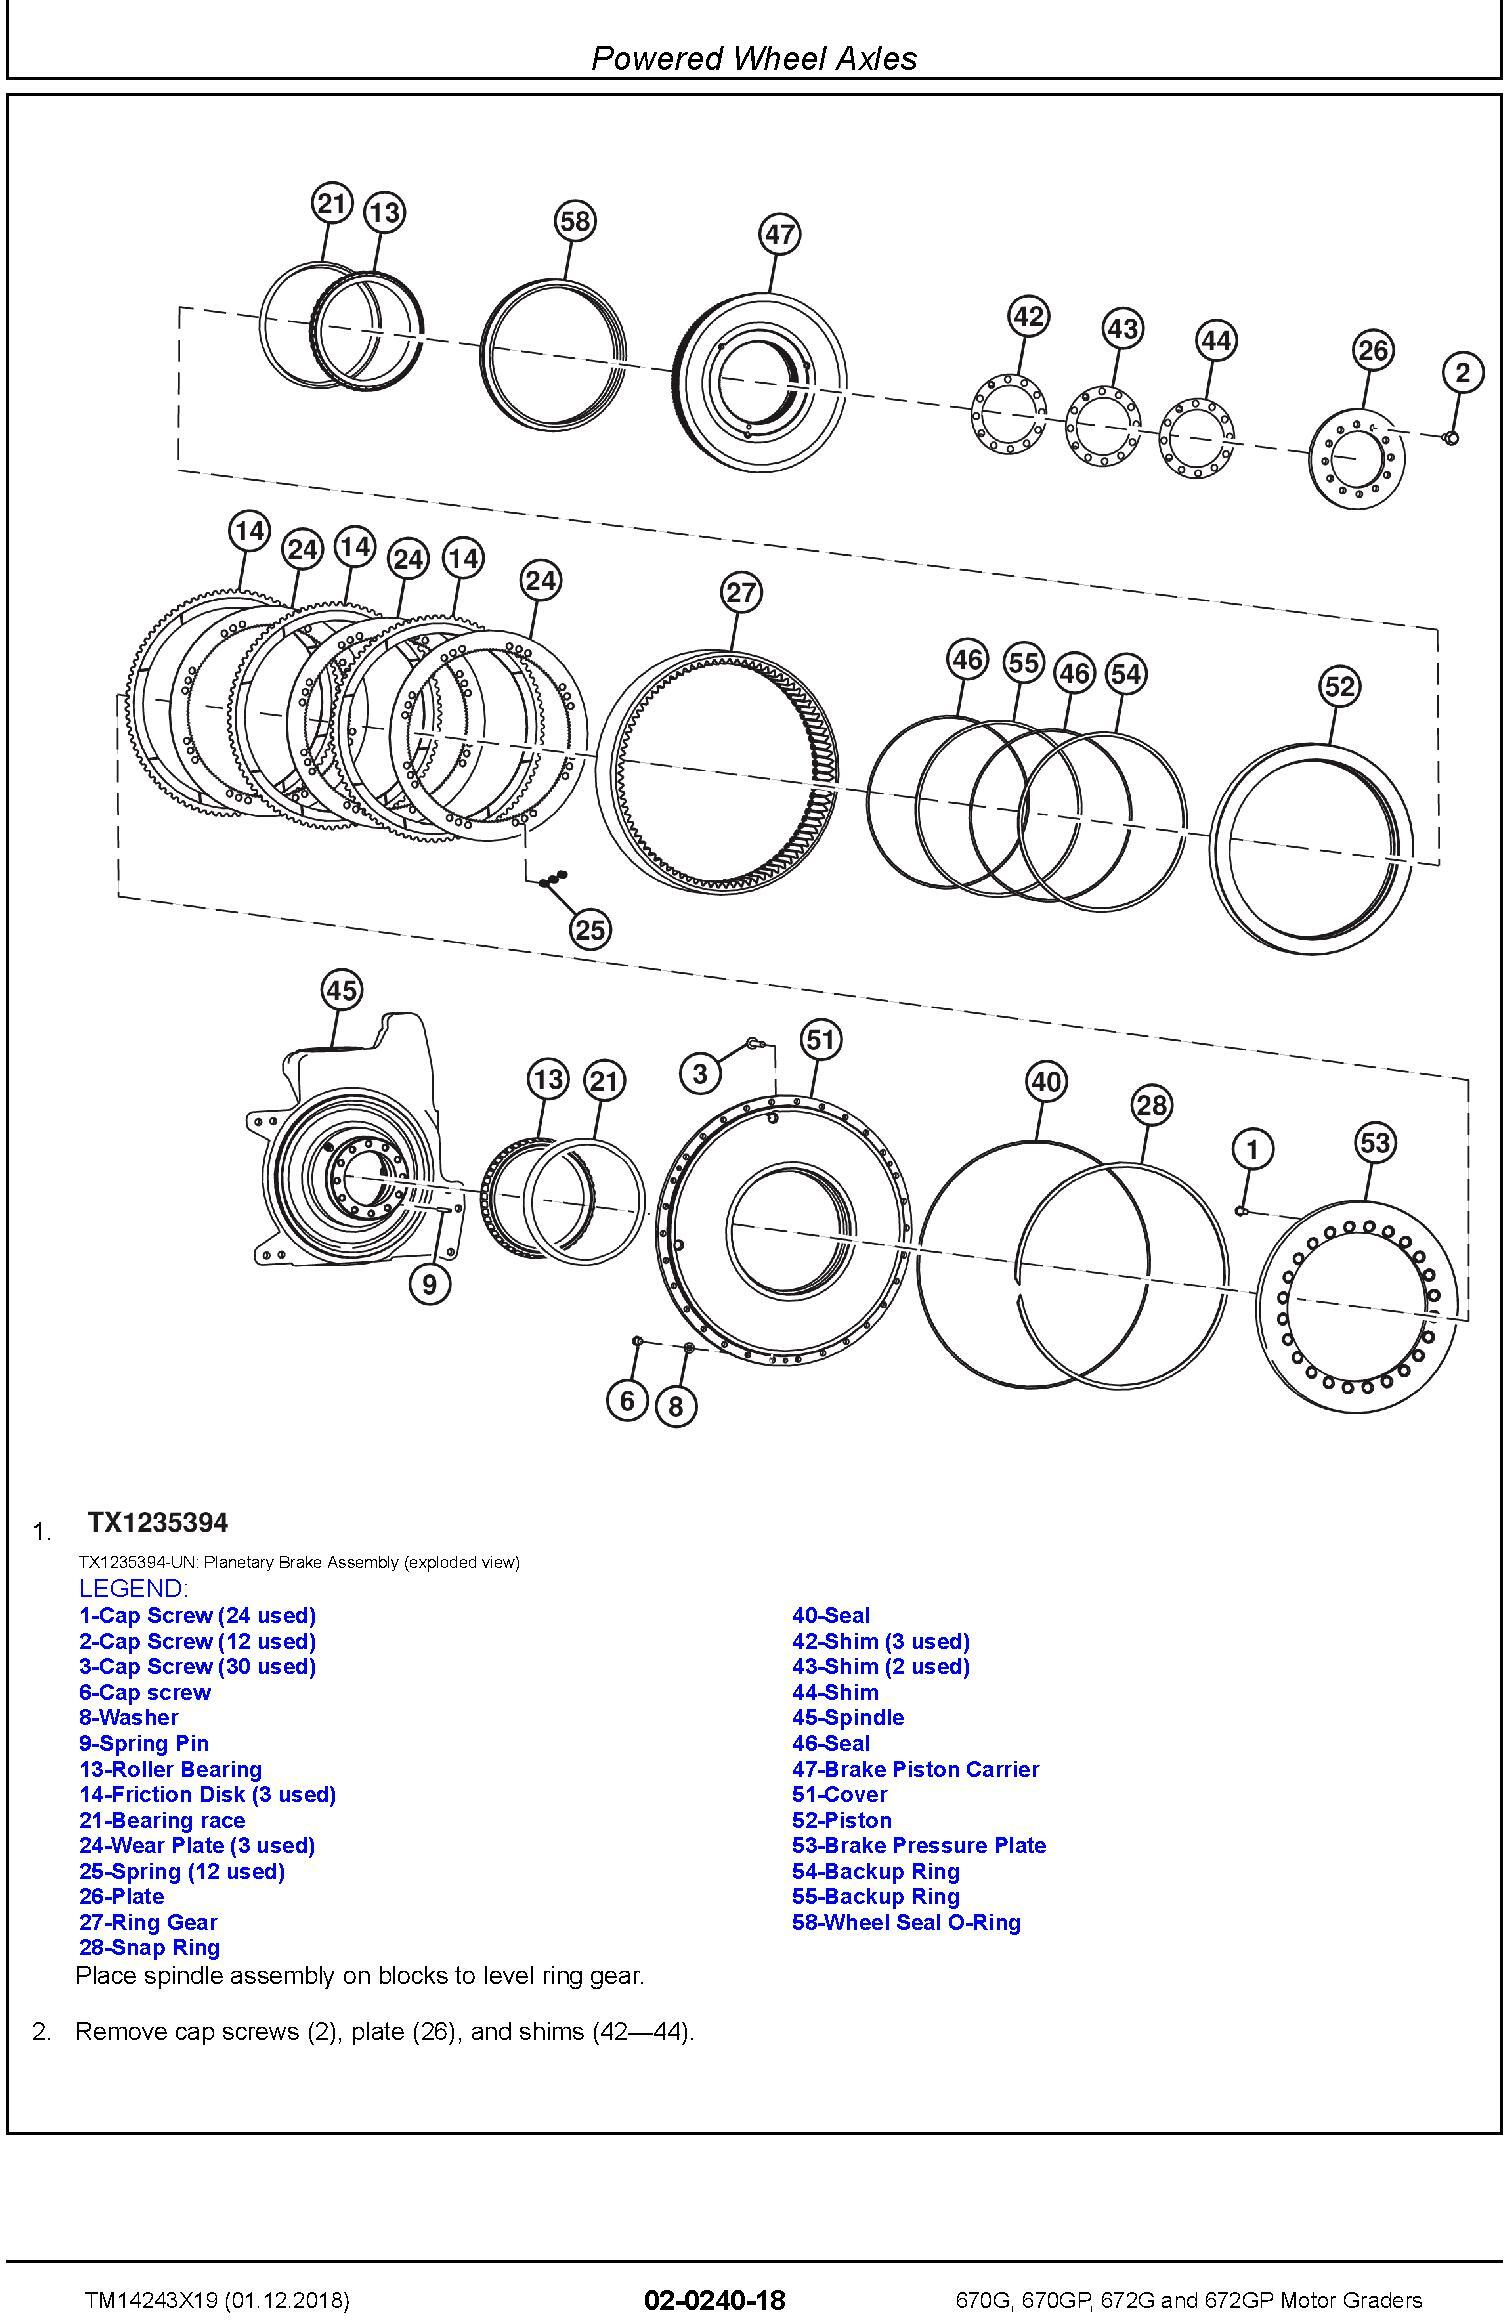 John Deere 670G, 670GP, 672G, 672GP (SN.F680878-, L700954-) Motor Graders Repair Manual (TM14243X19) - 2